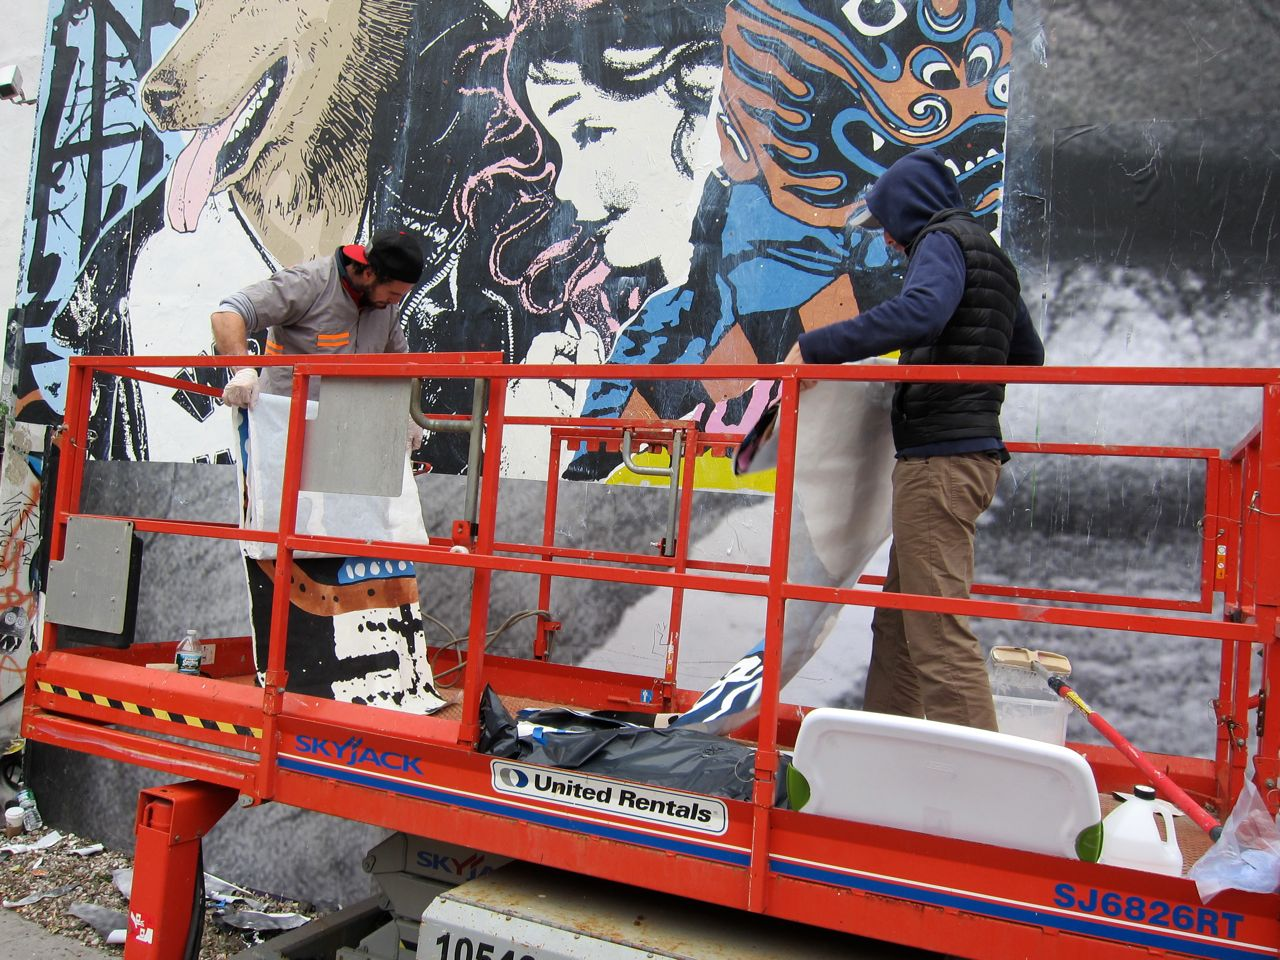 Faile Houston Bowery Goldman Mural 02